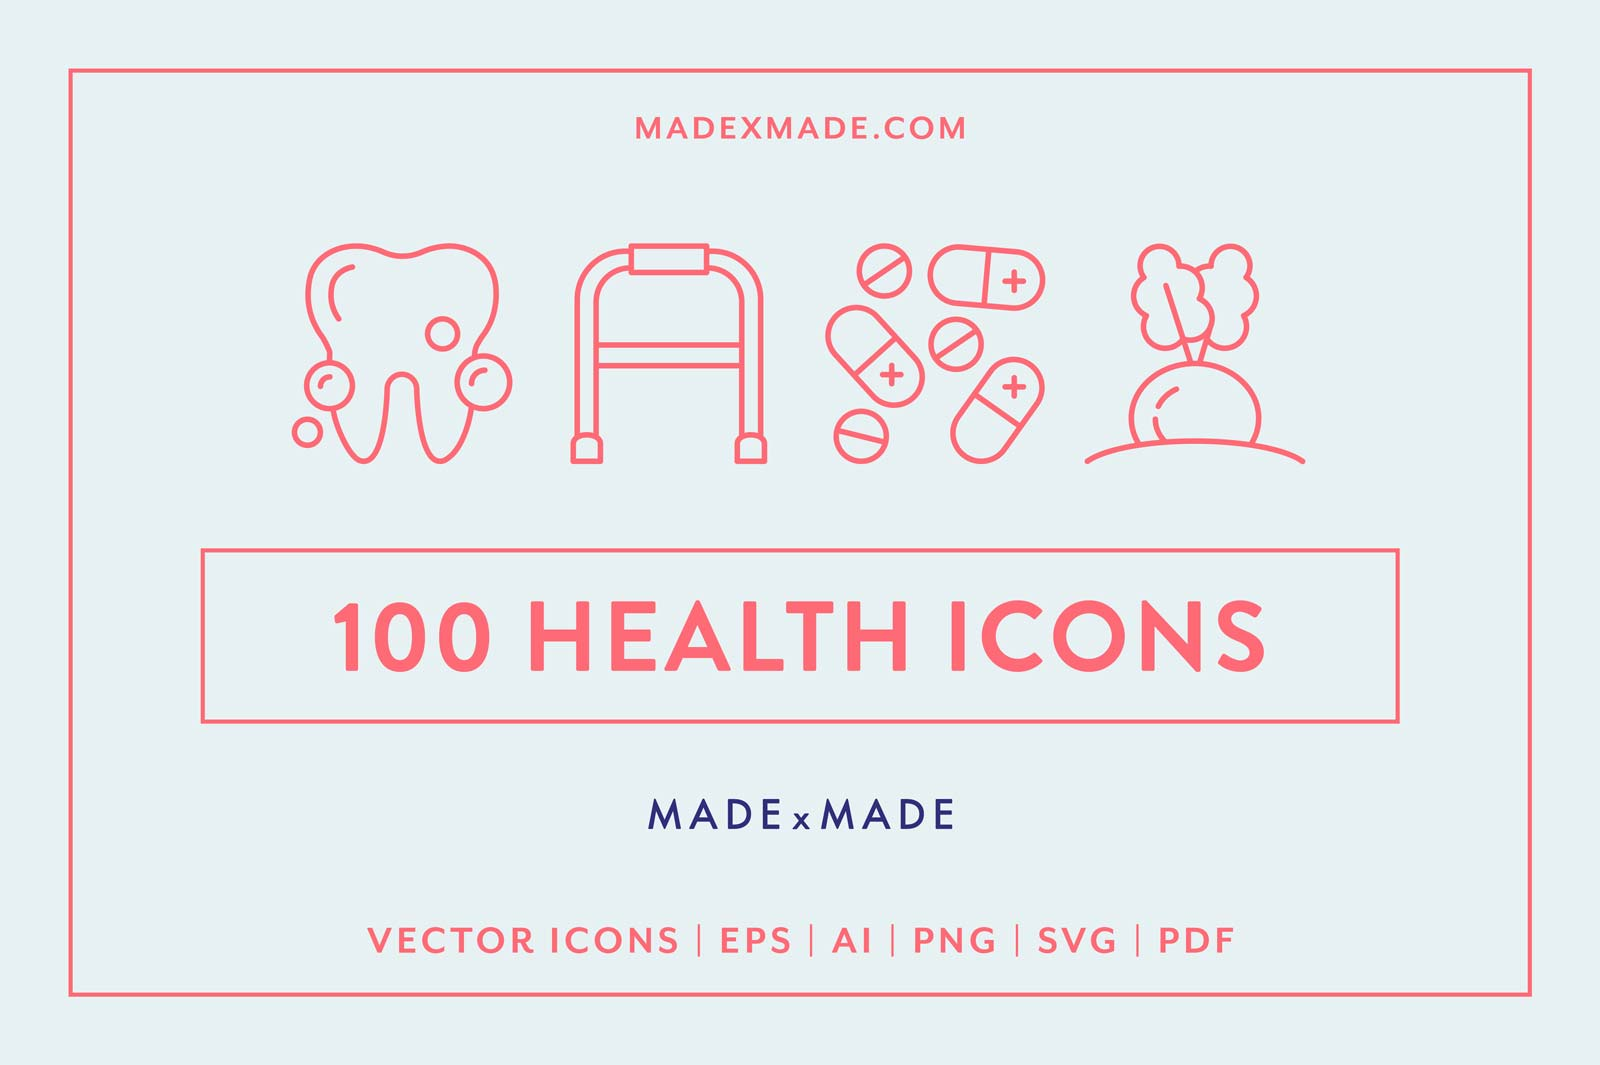 made x made icons health